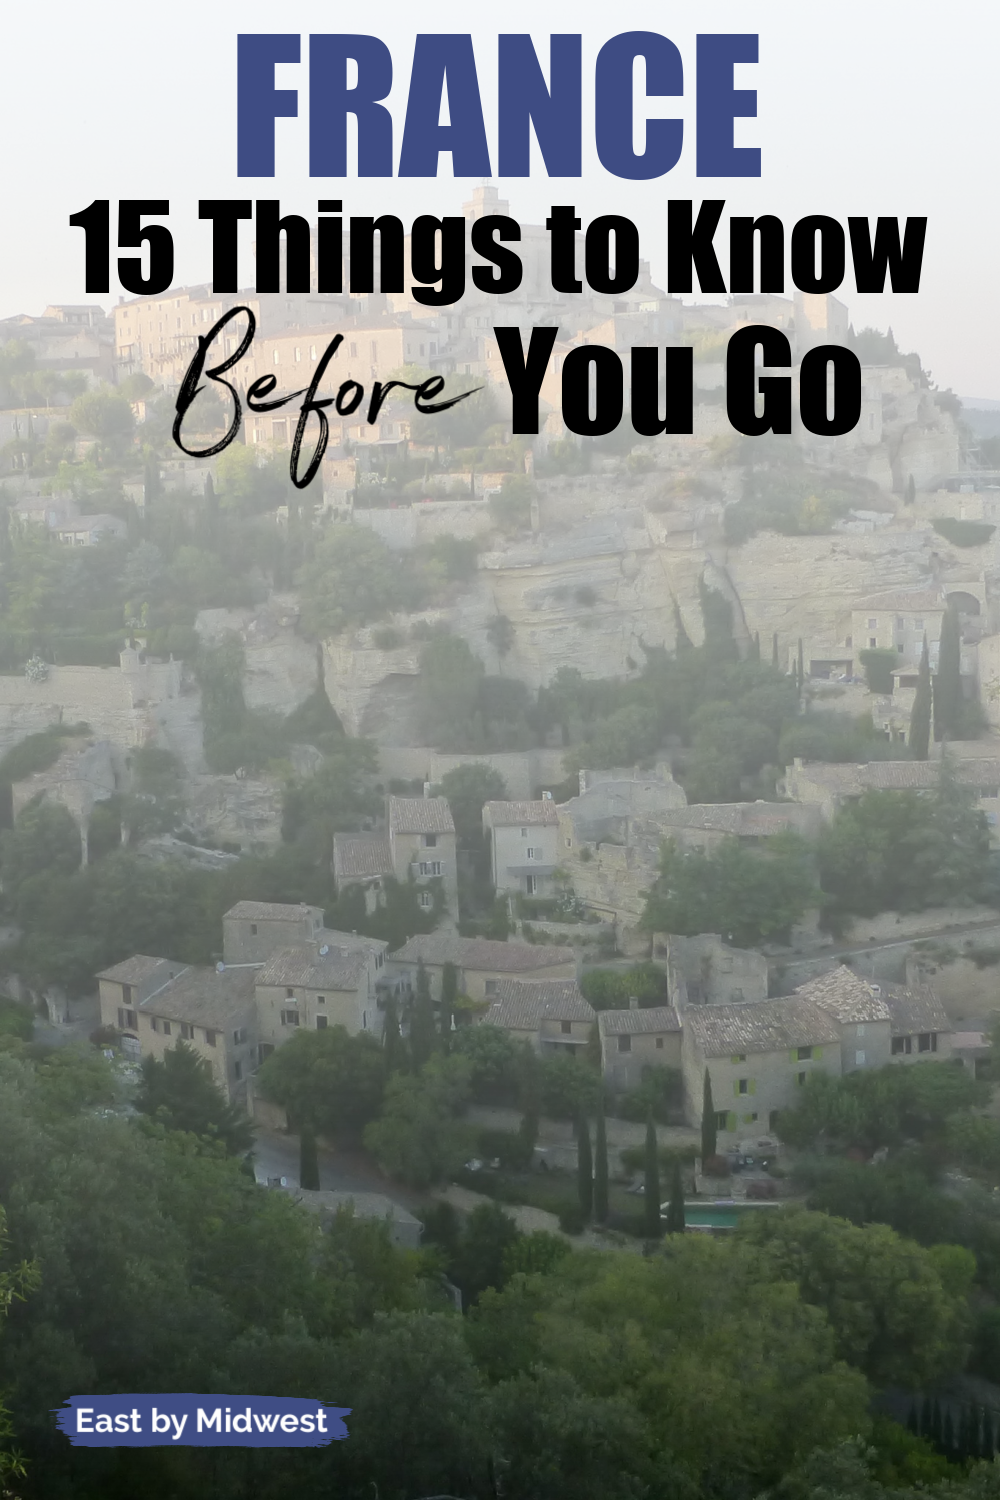 15 Things You Need to Know Before Visiting France